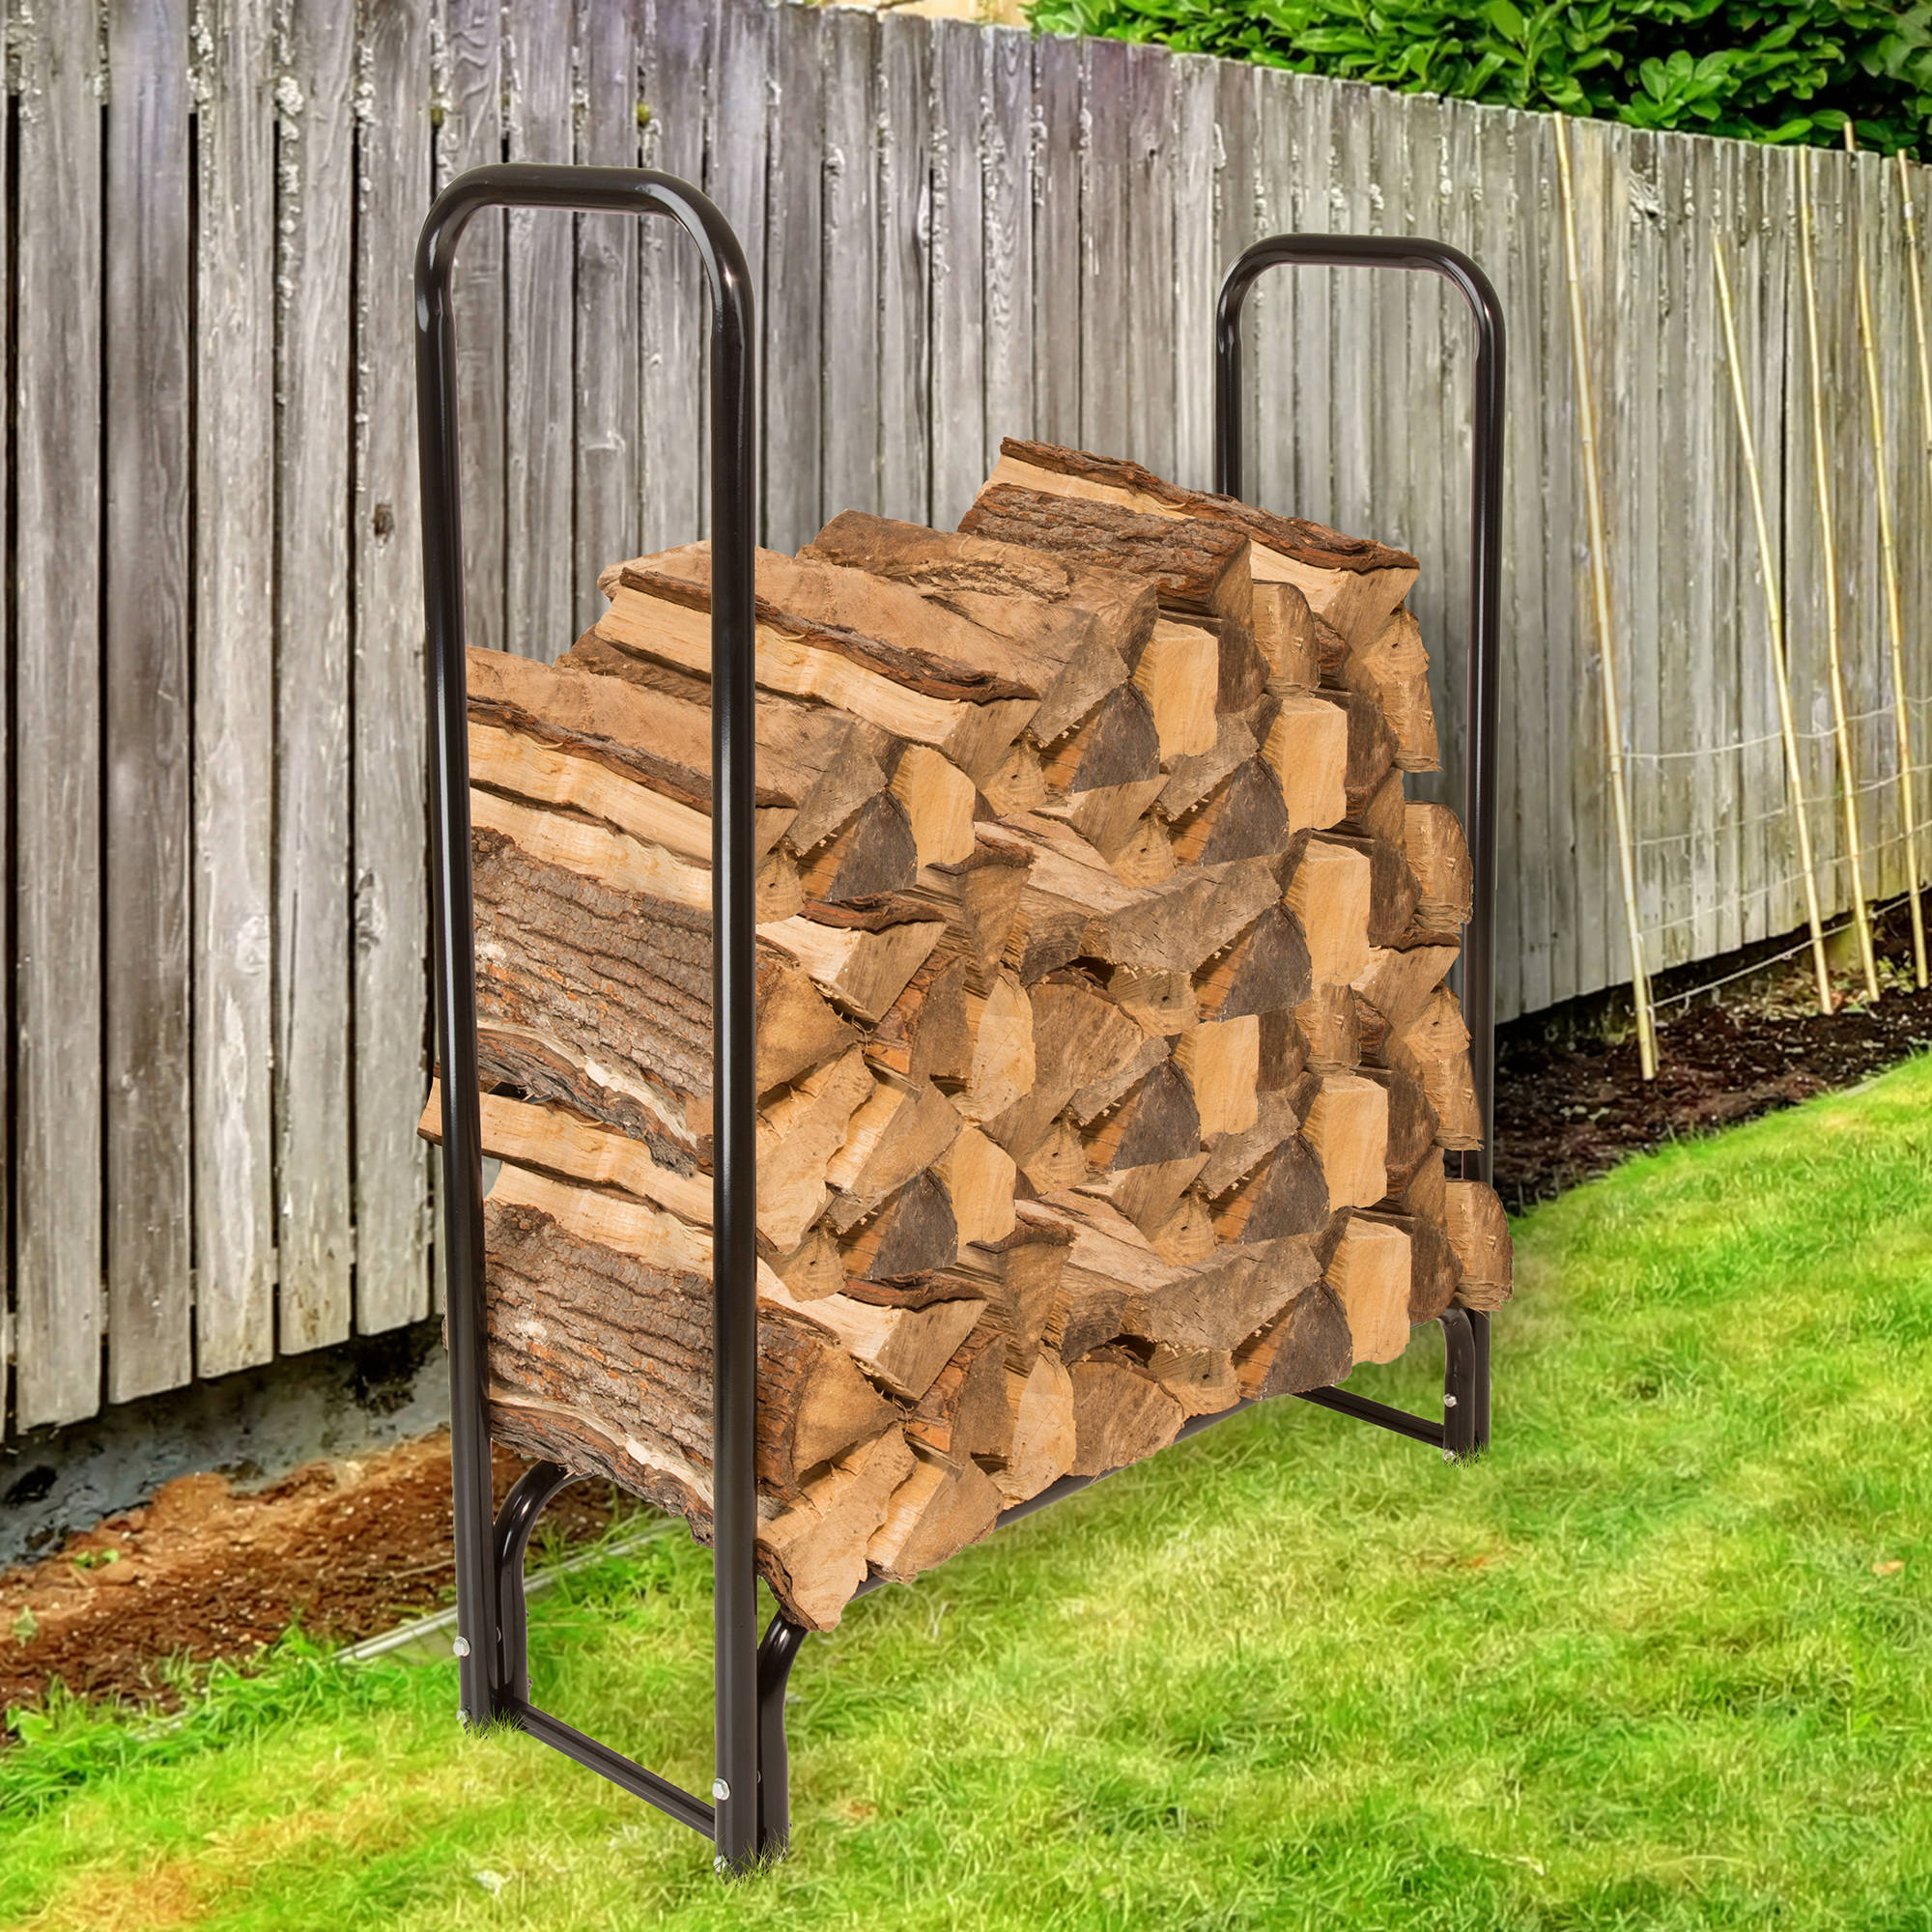 Pure Garden 4' Firewood Log Rack